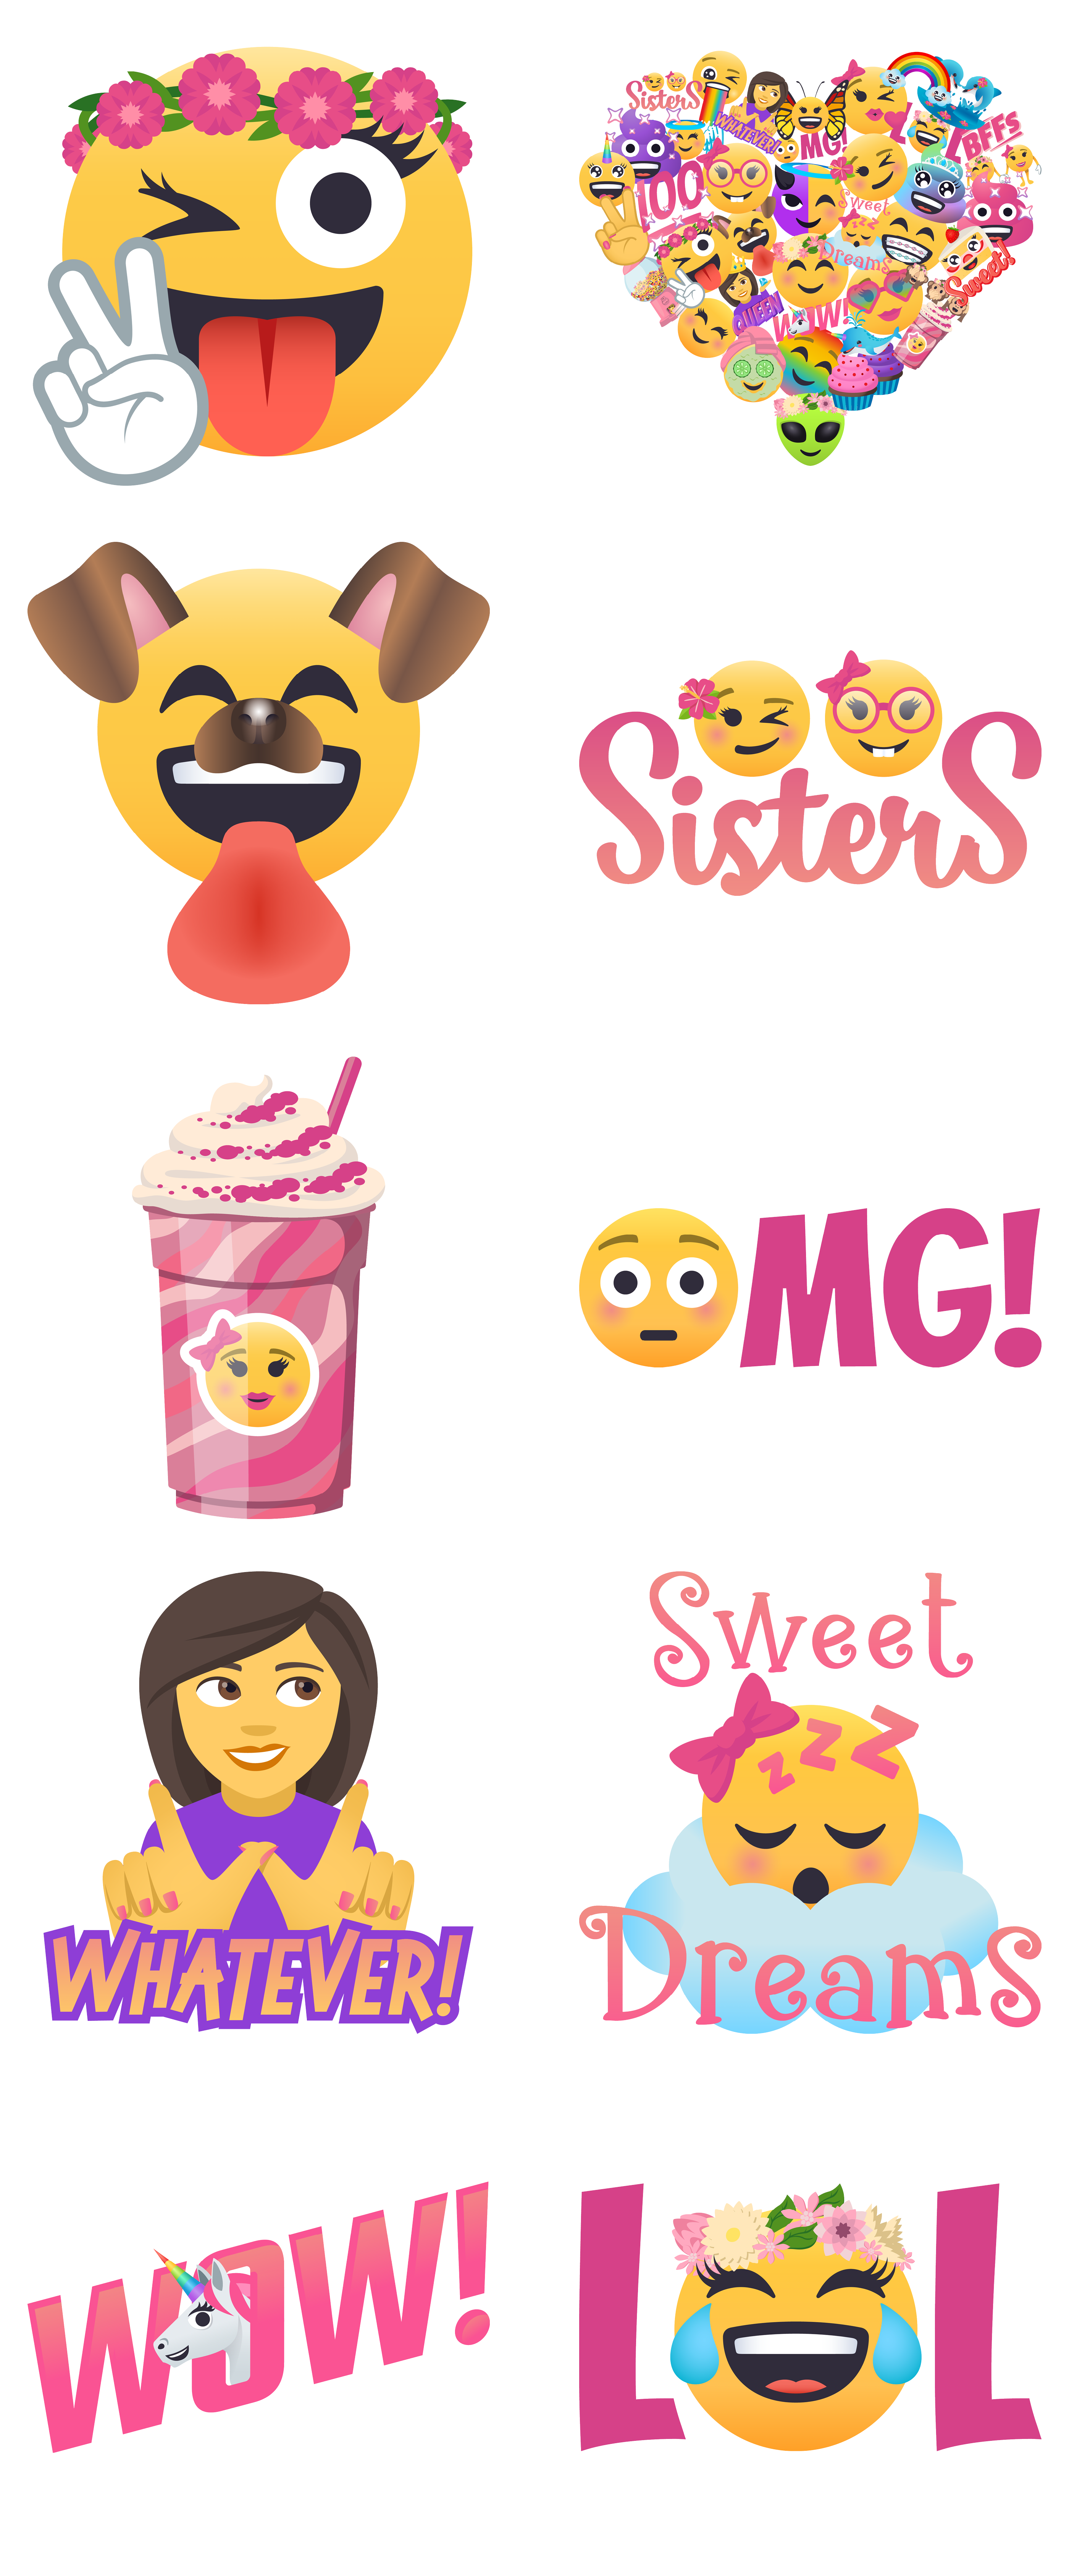 Presenting the Sweet n Sassy Sticker Pack